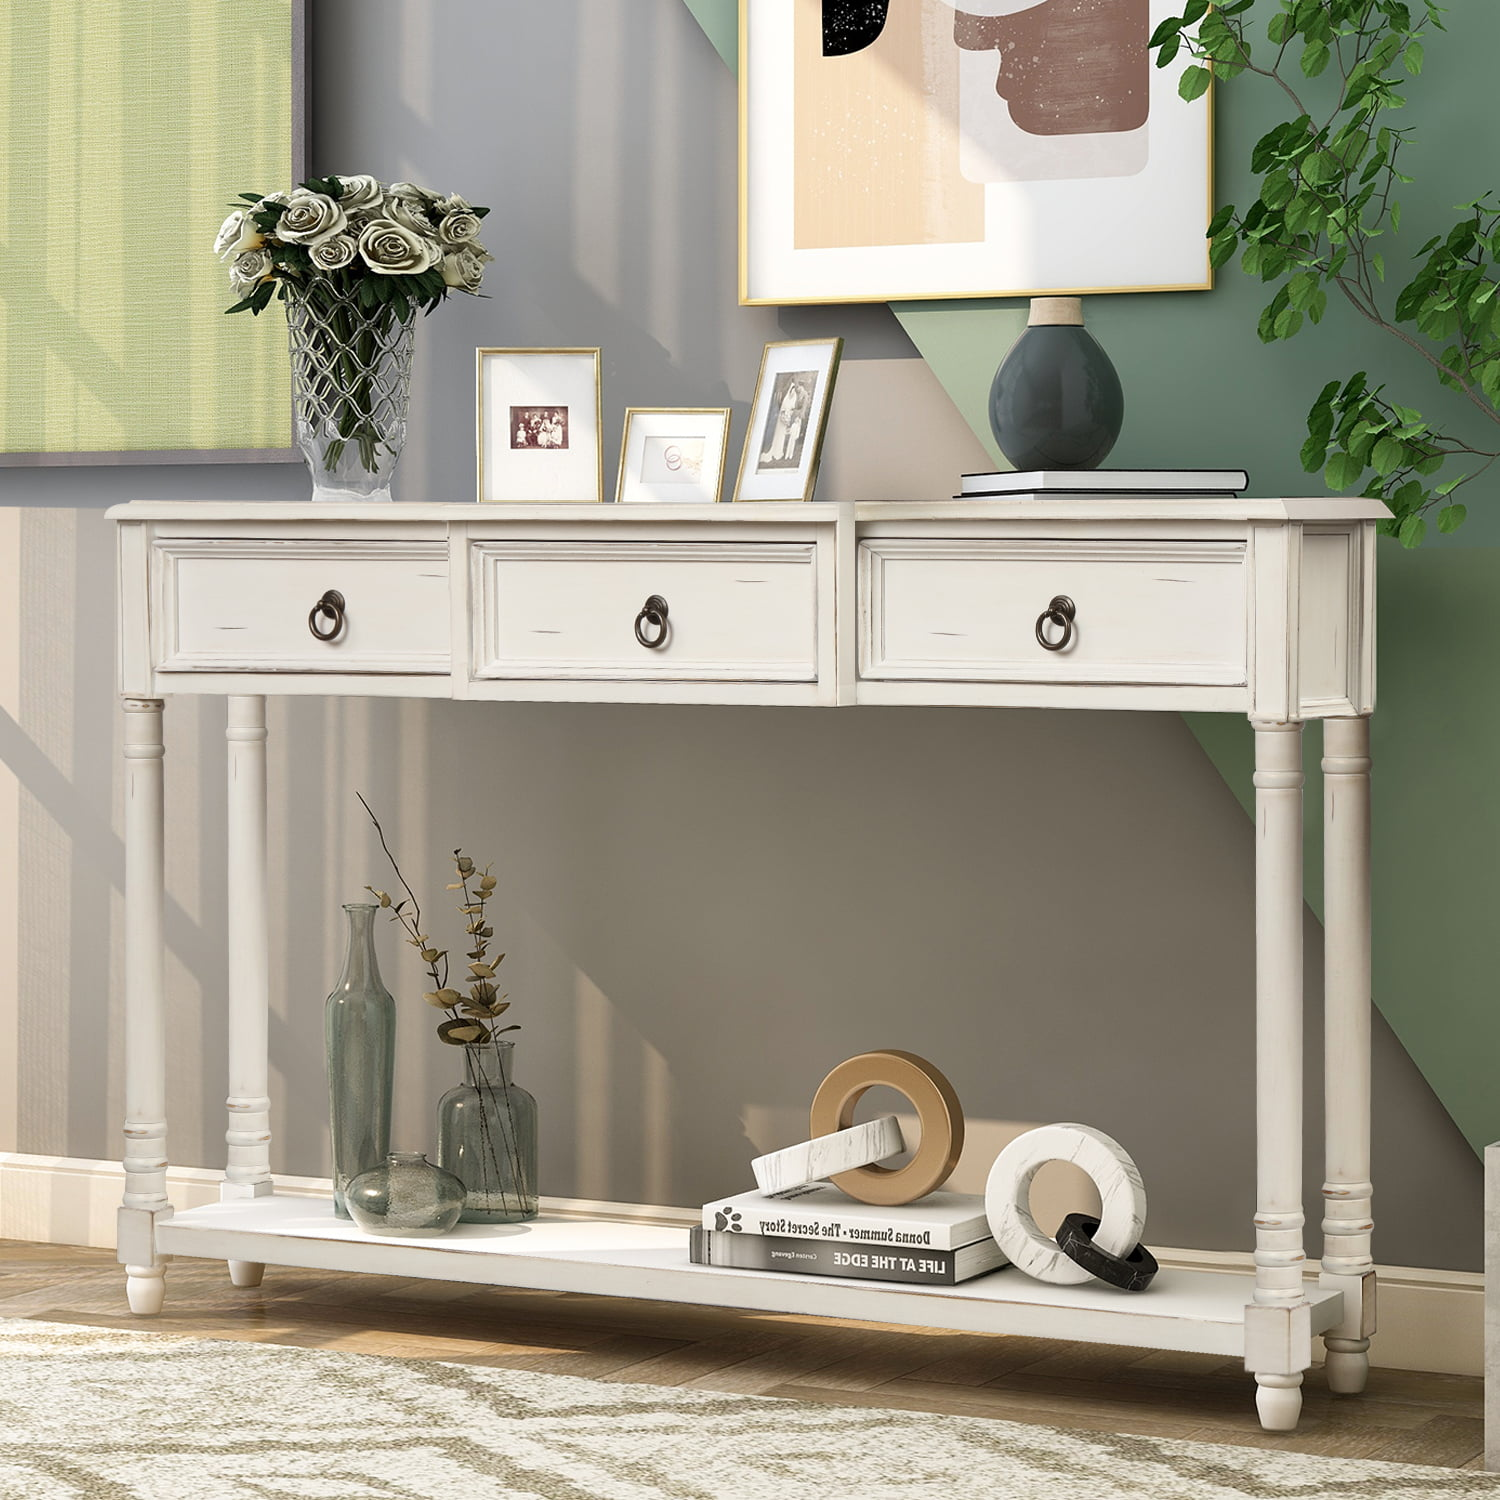 52 Narrow Console Sofa Table Farmhouse Entryway Hallway Couch With Storage Drawer Shelf Wood Buffet Cabinet Sideboard Accent Foyer Entrance For Living Room White A884 Walmart Com